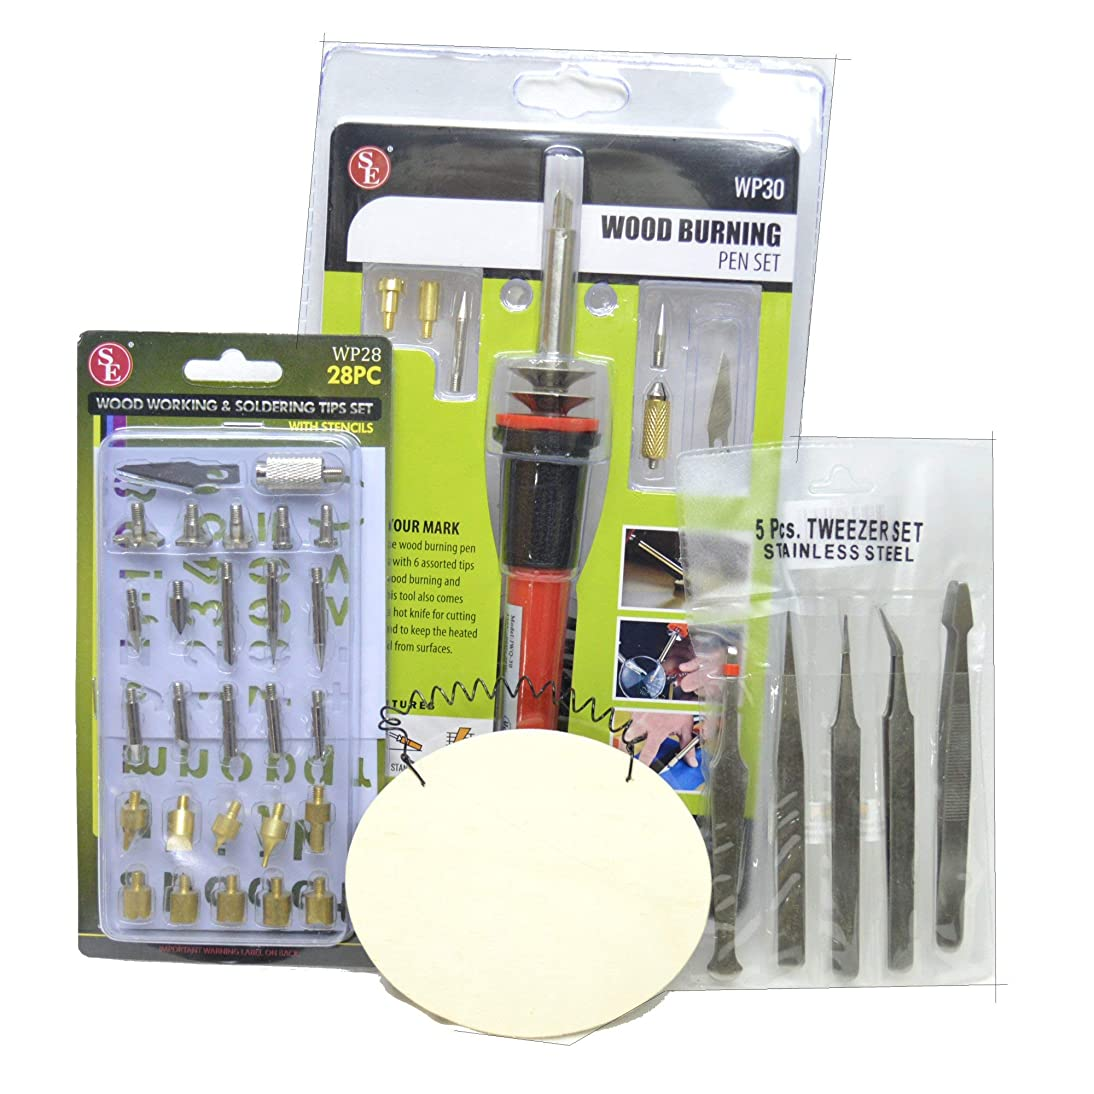 41-Piece Wood Burning Woodburner Bundle with 25 Extra Tips, Alphabet Templates, 5 Craft Tweezers, and Practice Wooden Ornament Blank for Crafts, Hobbies, and Soldering